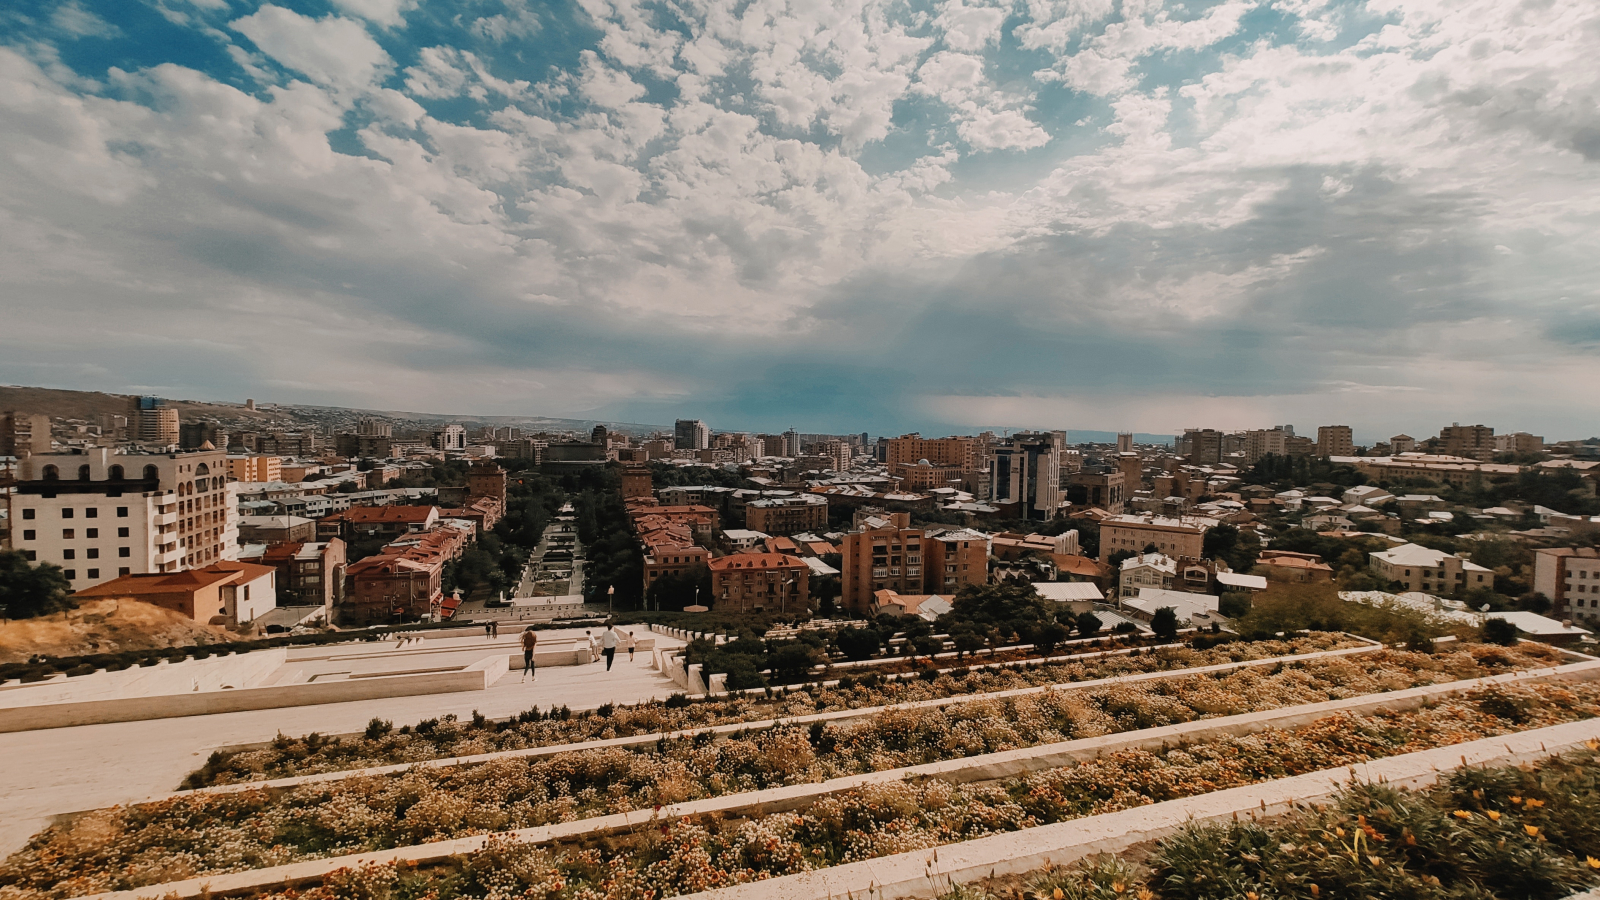 Yerevan, Armenia (Credit: Unsplash.com)